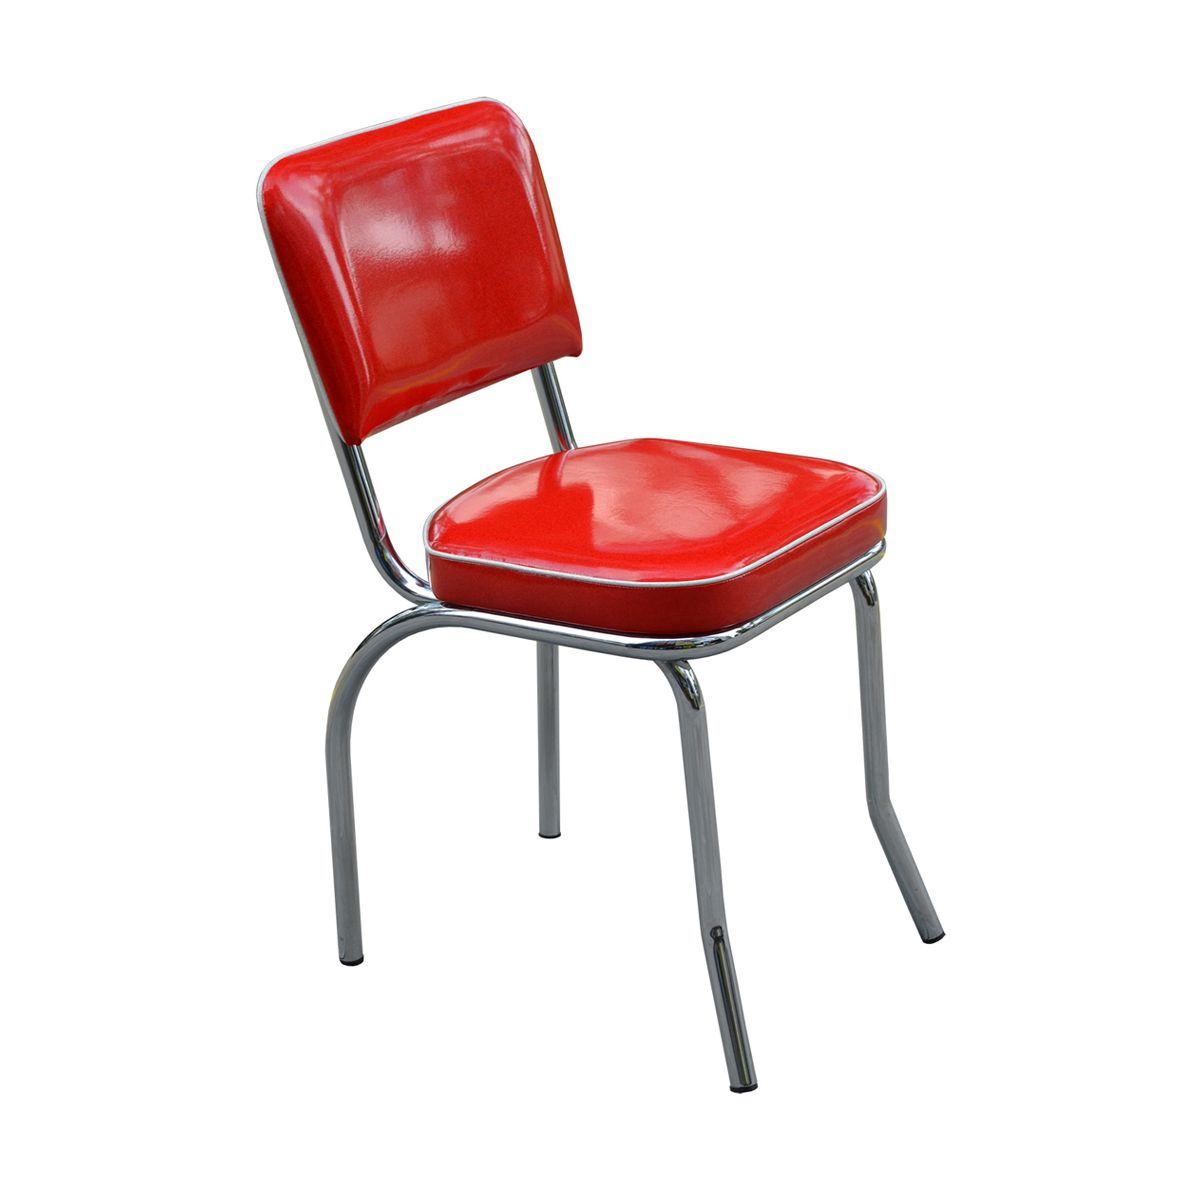 retro chair american diner chair 50s diner chair diner